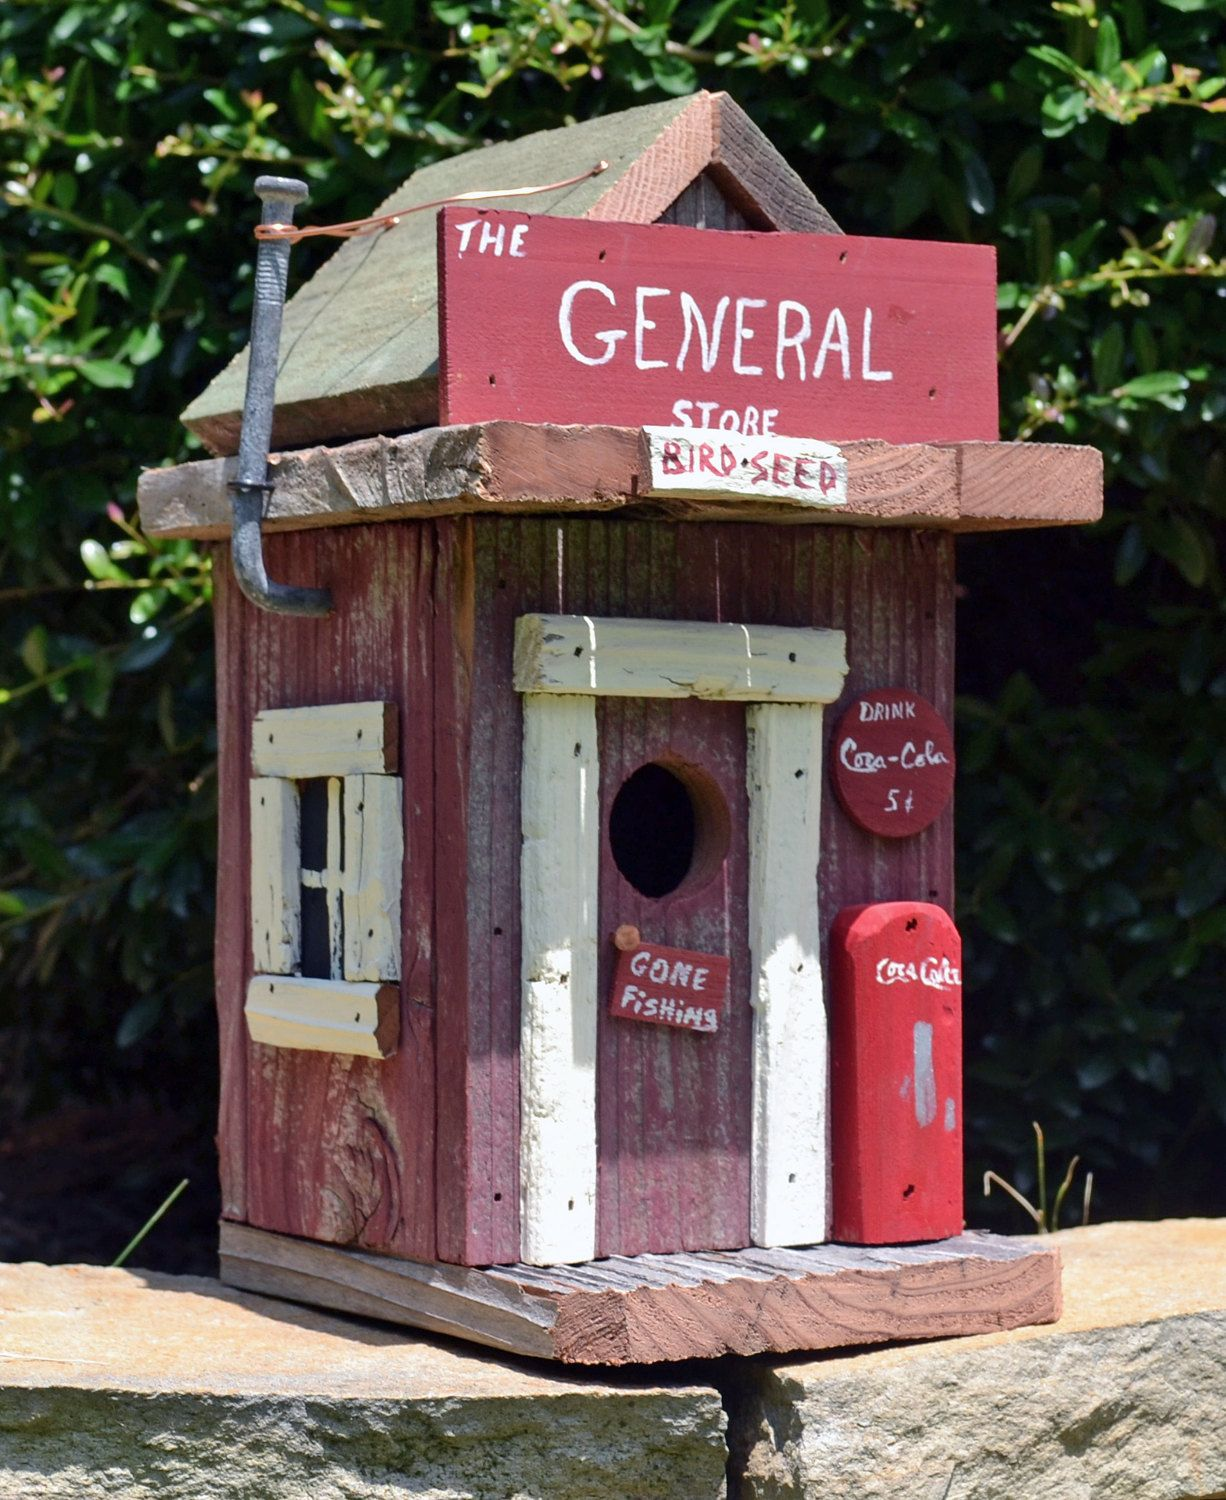 rustic birdhouse primitive birdhouse general store bird houses rh pinterest com birdhouse store in rochester birdhouses stores oregon coast